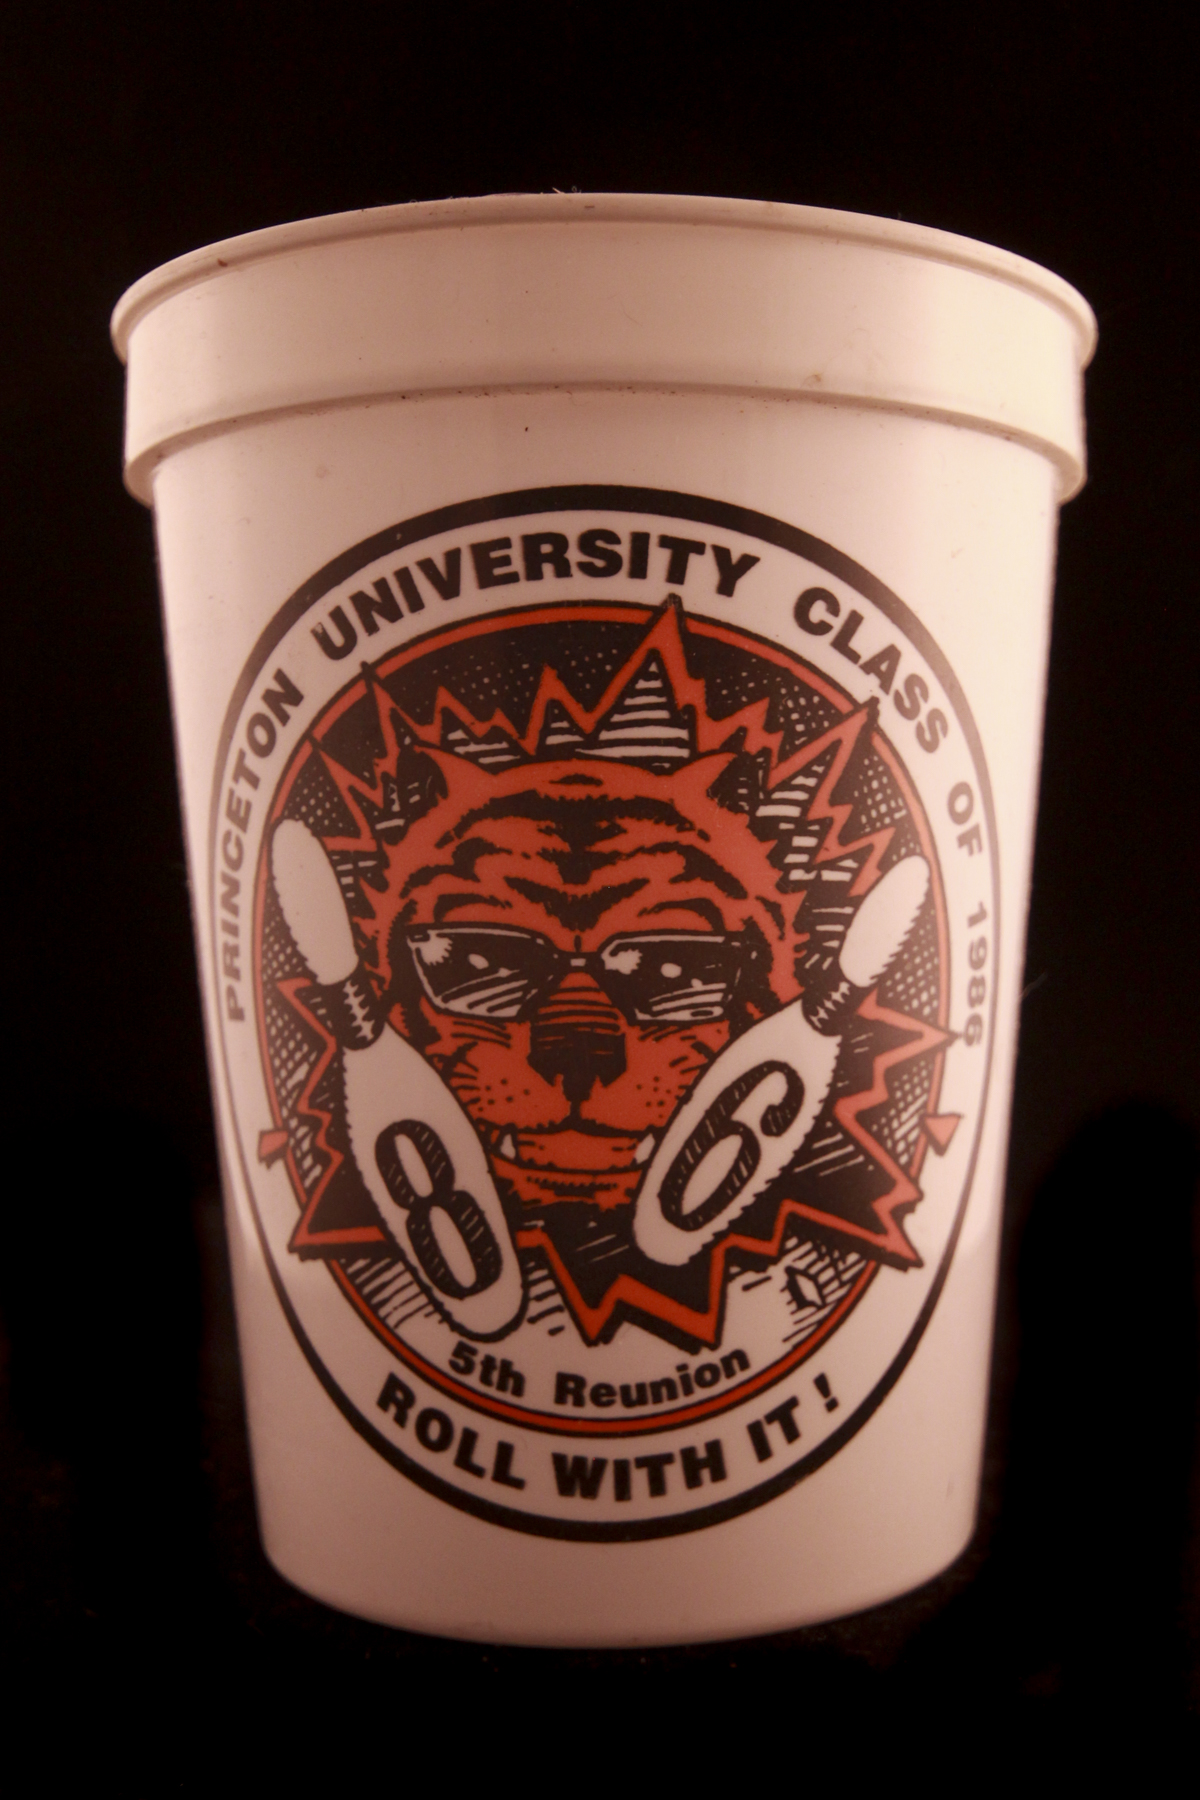 Beer Cup 1986 5th Reunion